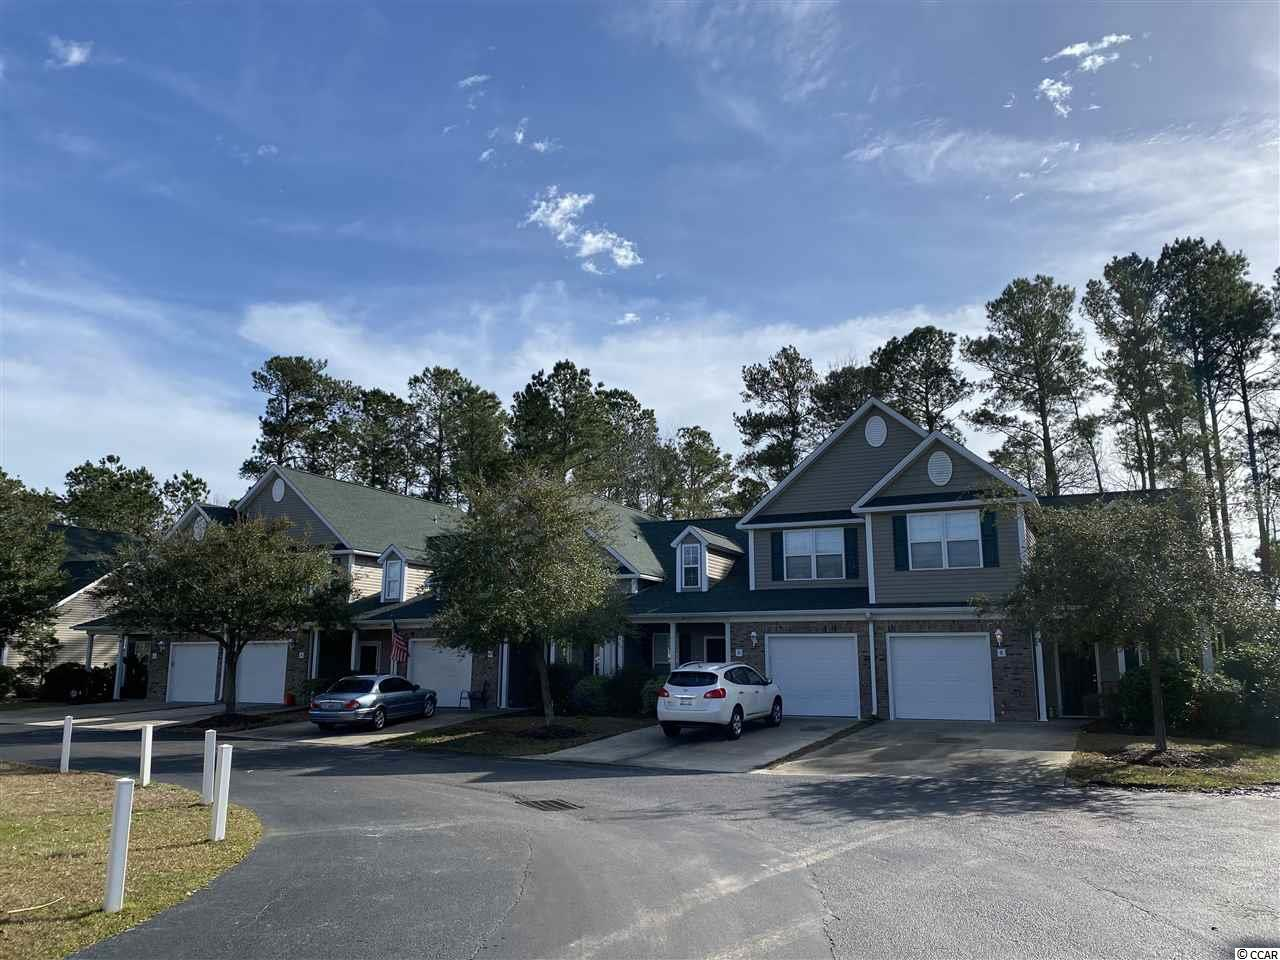 This 3 bedroom 2.5 bath Townhouse is located in a quiet neighborhood of Park West in Murrells Inlet.  The master bedroom is on the first floor and has a walk-in closet.  Kitchen is spacious with work island.  Other 2 bedrooms upstairs and a full bath.  One car garage attached.  Close to grocery store and restaurants.  Short drive to the beach, inlet attractions and airport.